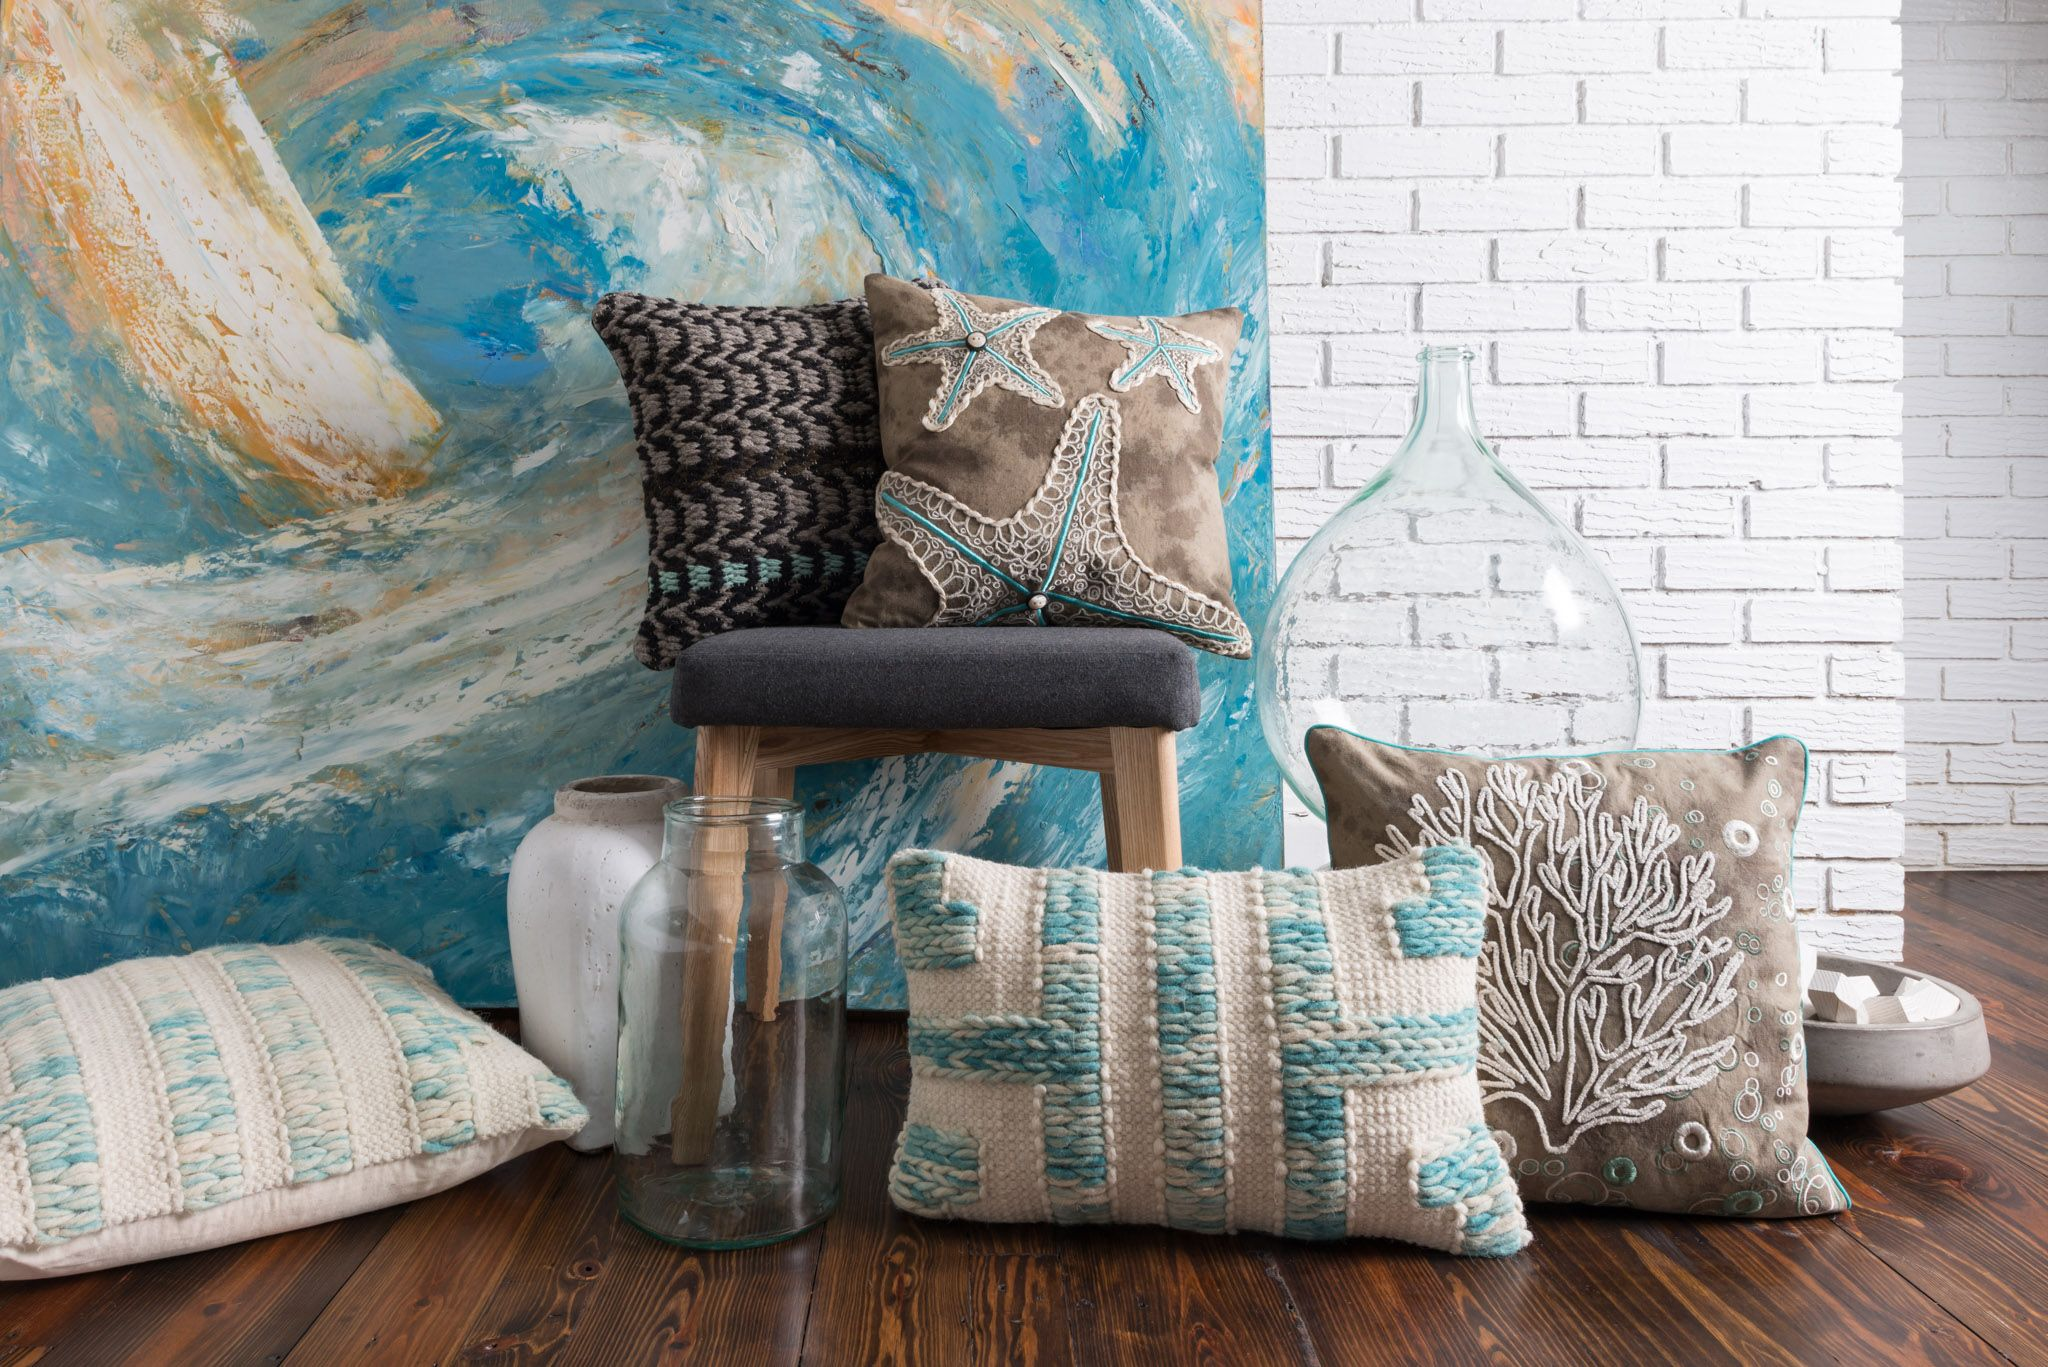 Loving This Coastal Vibe With These Awesome Detailed Pillows By Loloi.  Available @ Top Drawer